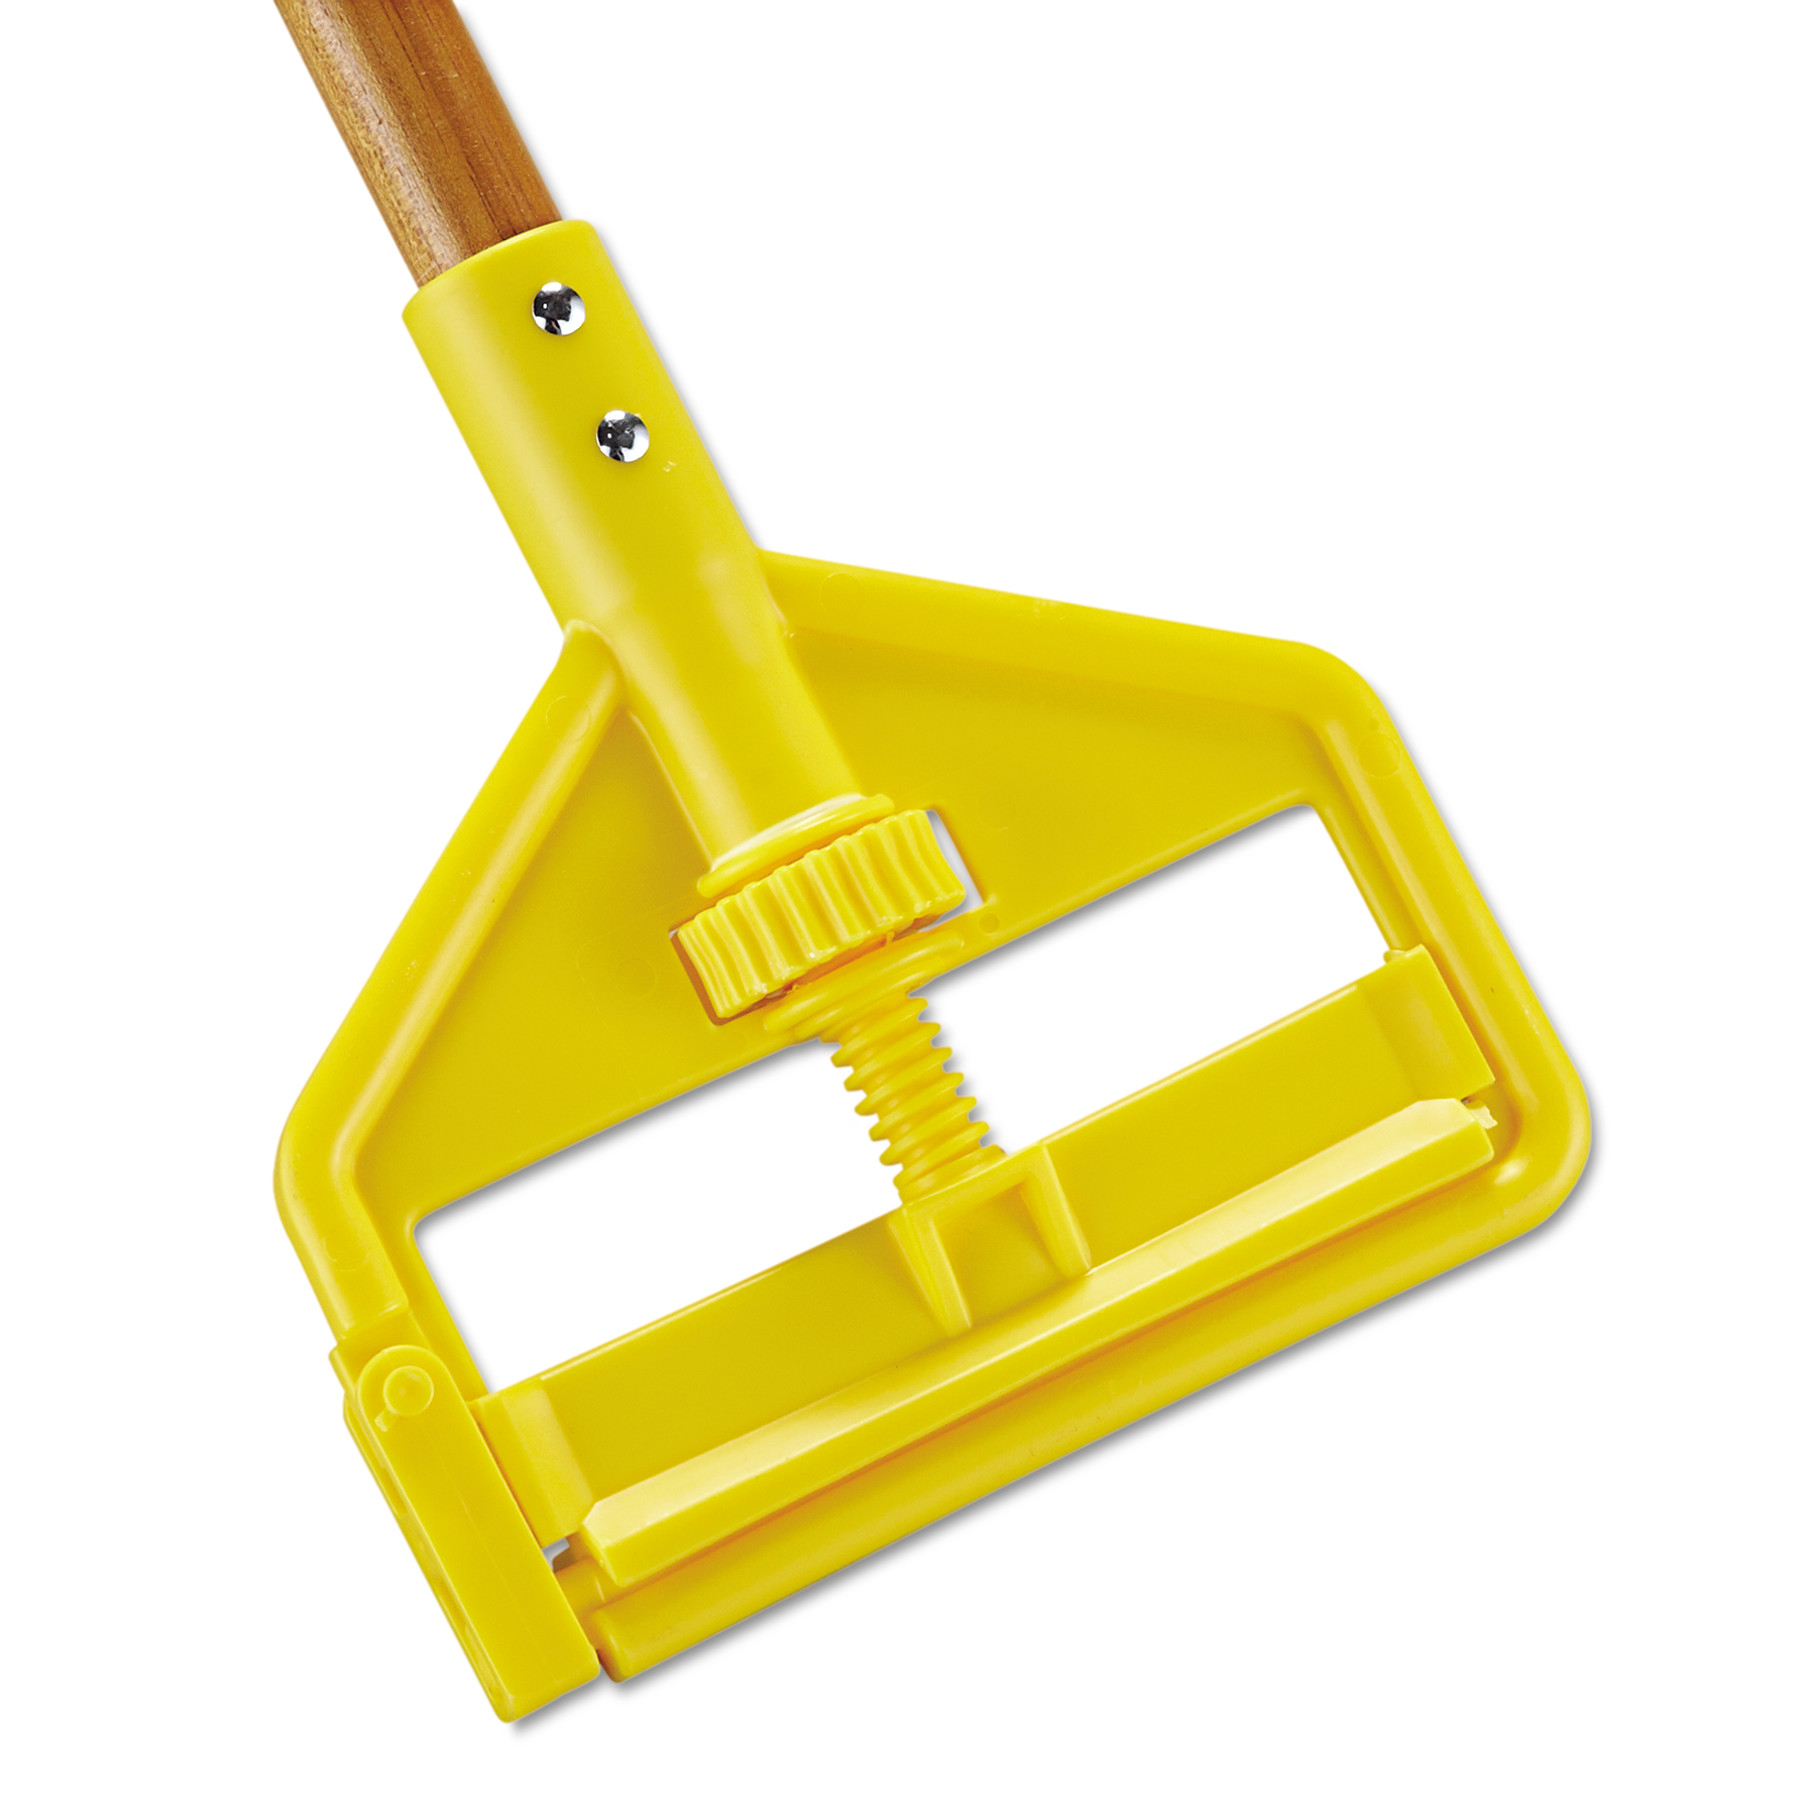 Rubbermaid Commercial Invader Side-Gate Wood Wet-Mop Handle, 1 dia x 60, Natural